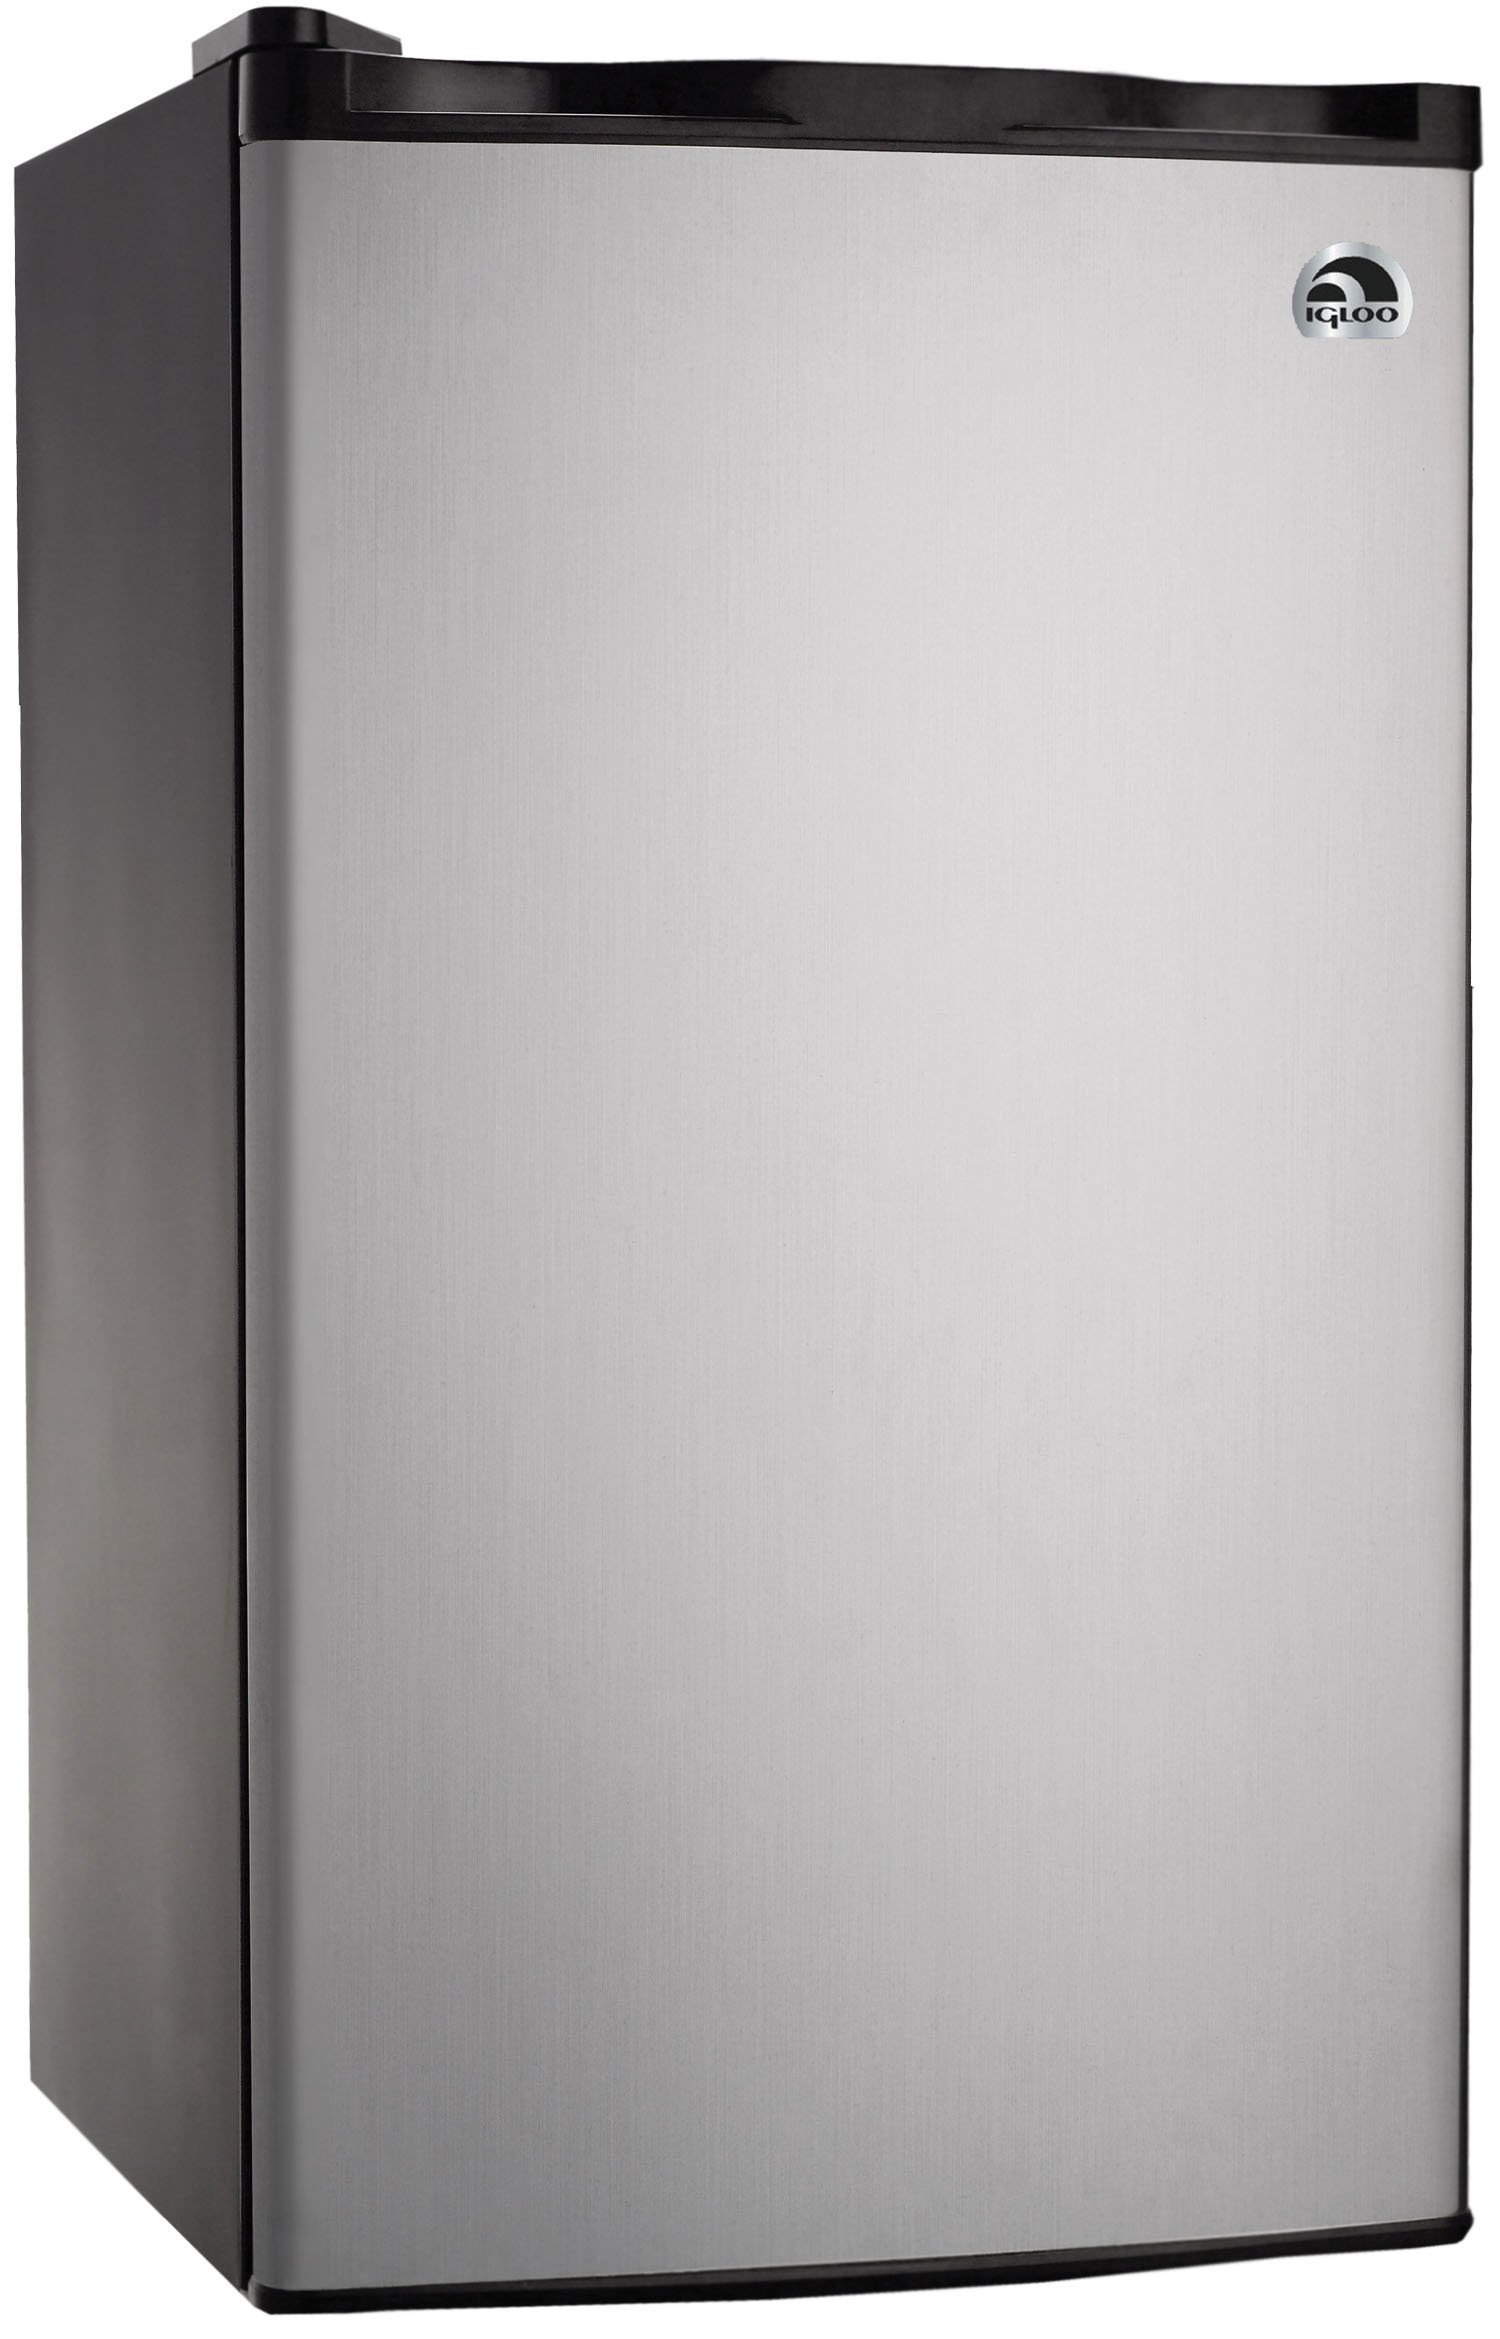 RCA RFR321-FR320/8 IGLOO Mini Refrigerator, 3.2 Cu Ft Fridge, Stainless Steel by RCA